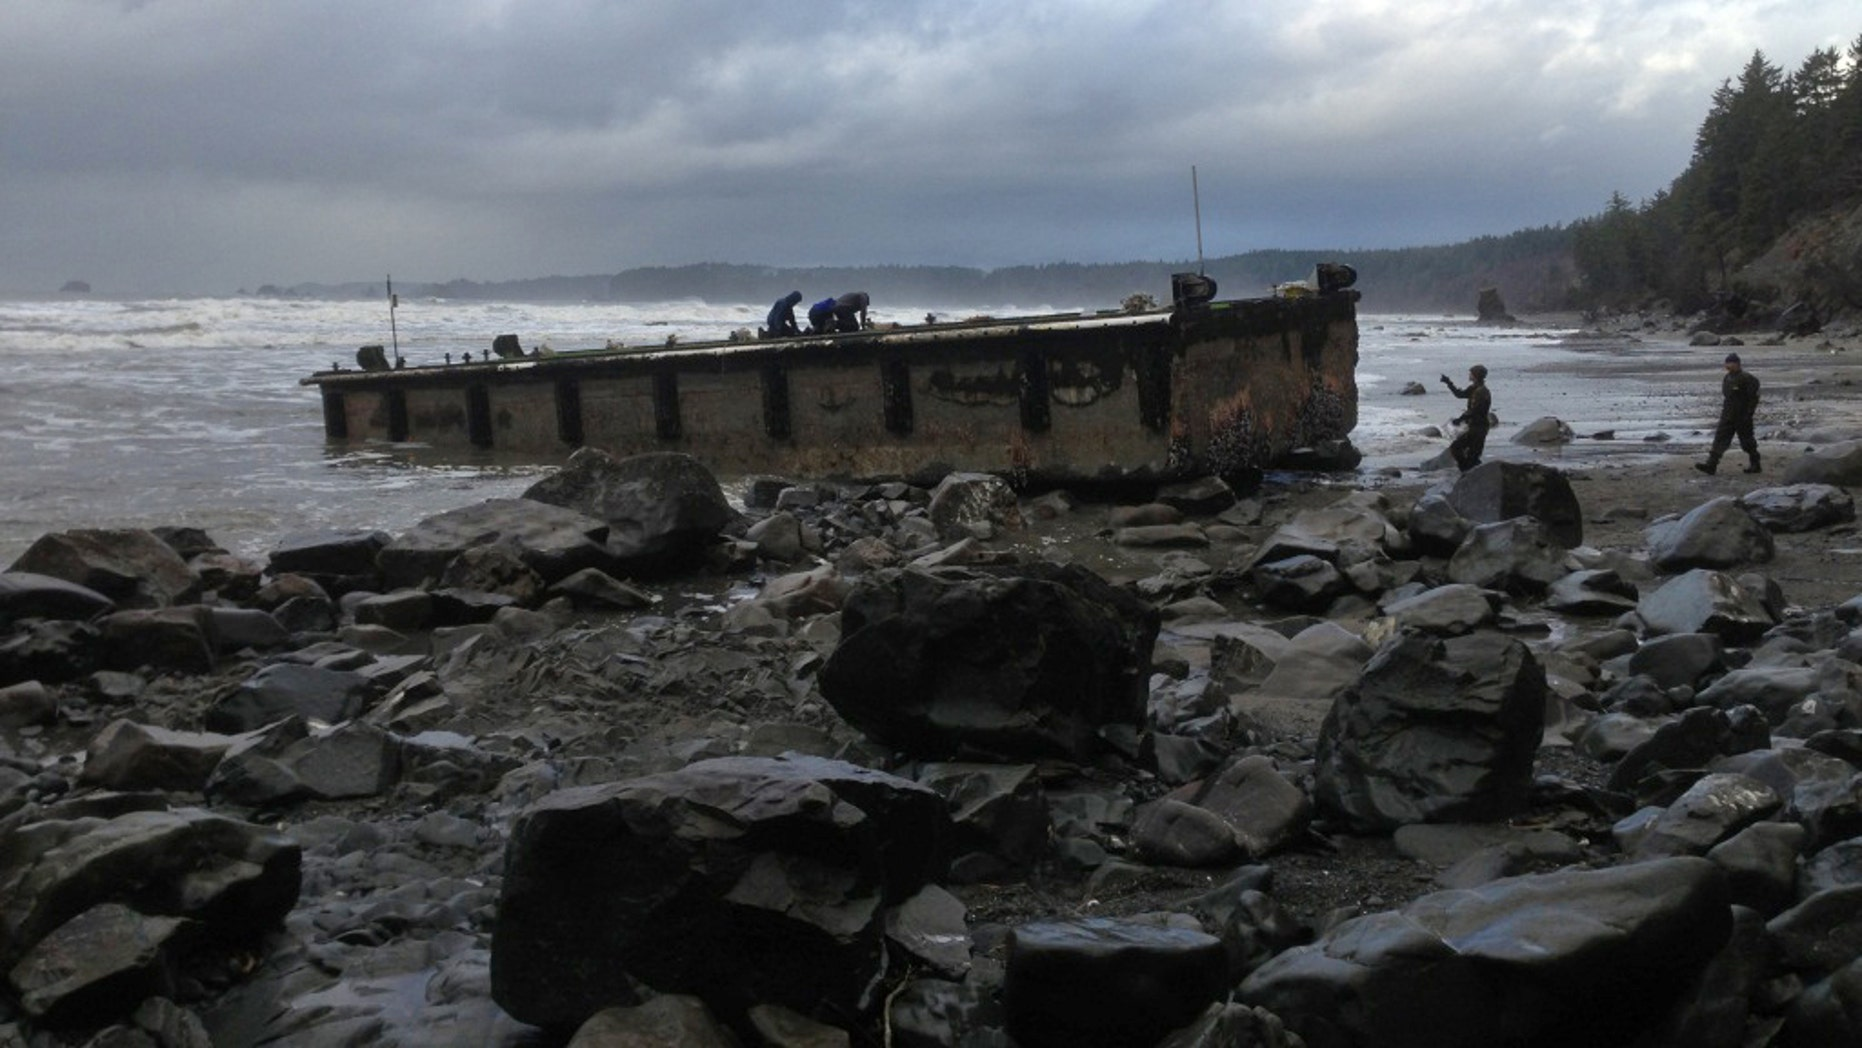 In this Dec. 21, 2012 file photo provided by the Washington Dept. of Fish & Wildlife, scientists inspect a dock that floated up on a remote stretch of wilderness beach in northwestern Washington. A scientist who examined the dock says it looks just like the one that came ashore on a central Oregon beach last summer, suggesting it also is a piece of tsunami debris from Japan. (AP Photo/Washington Dept. of Fish & Wildlife)